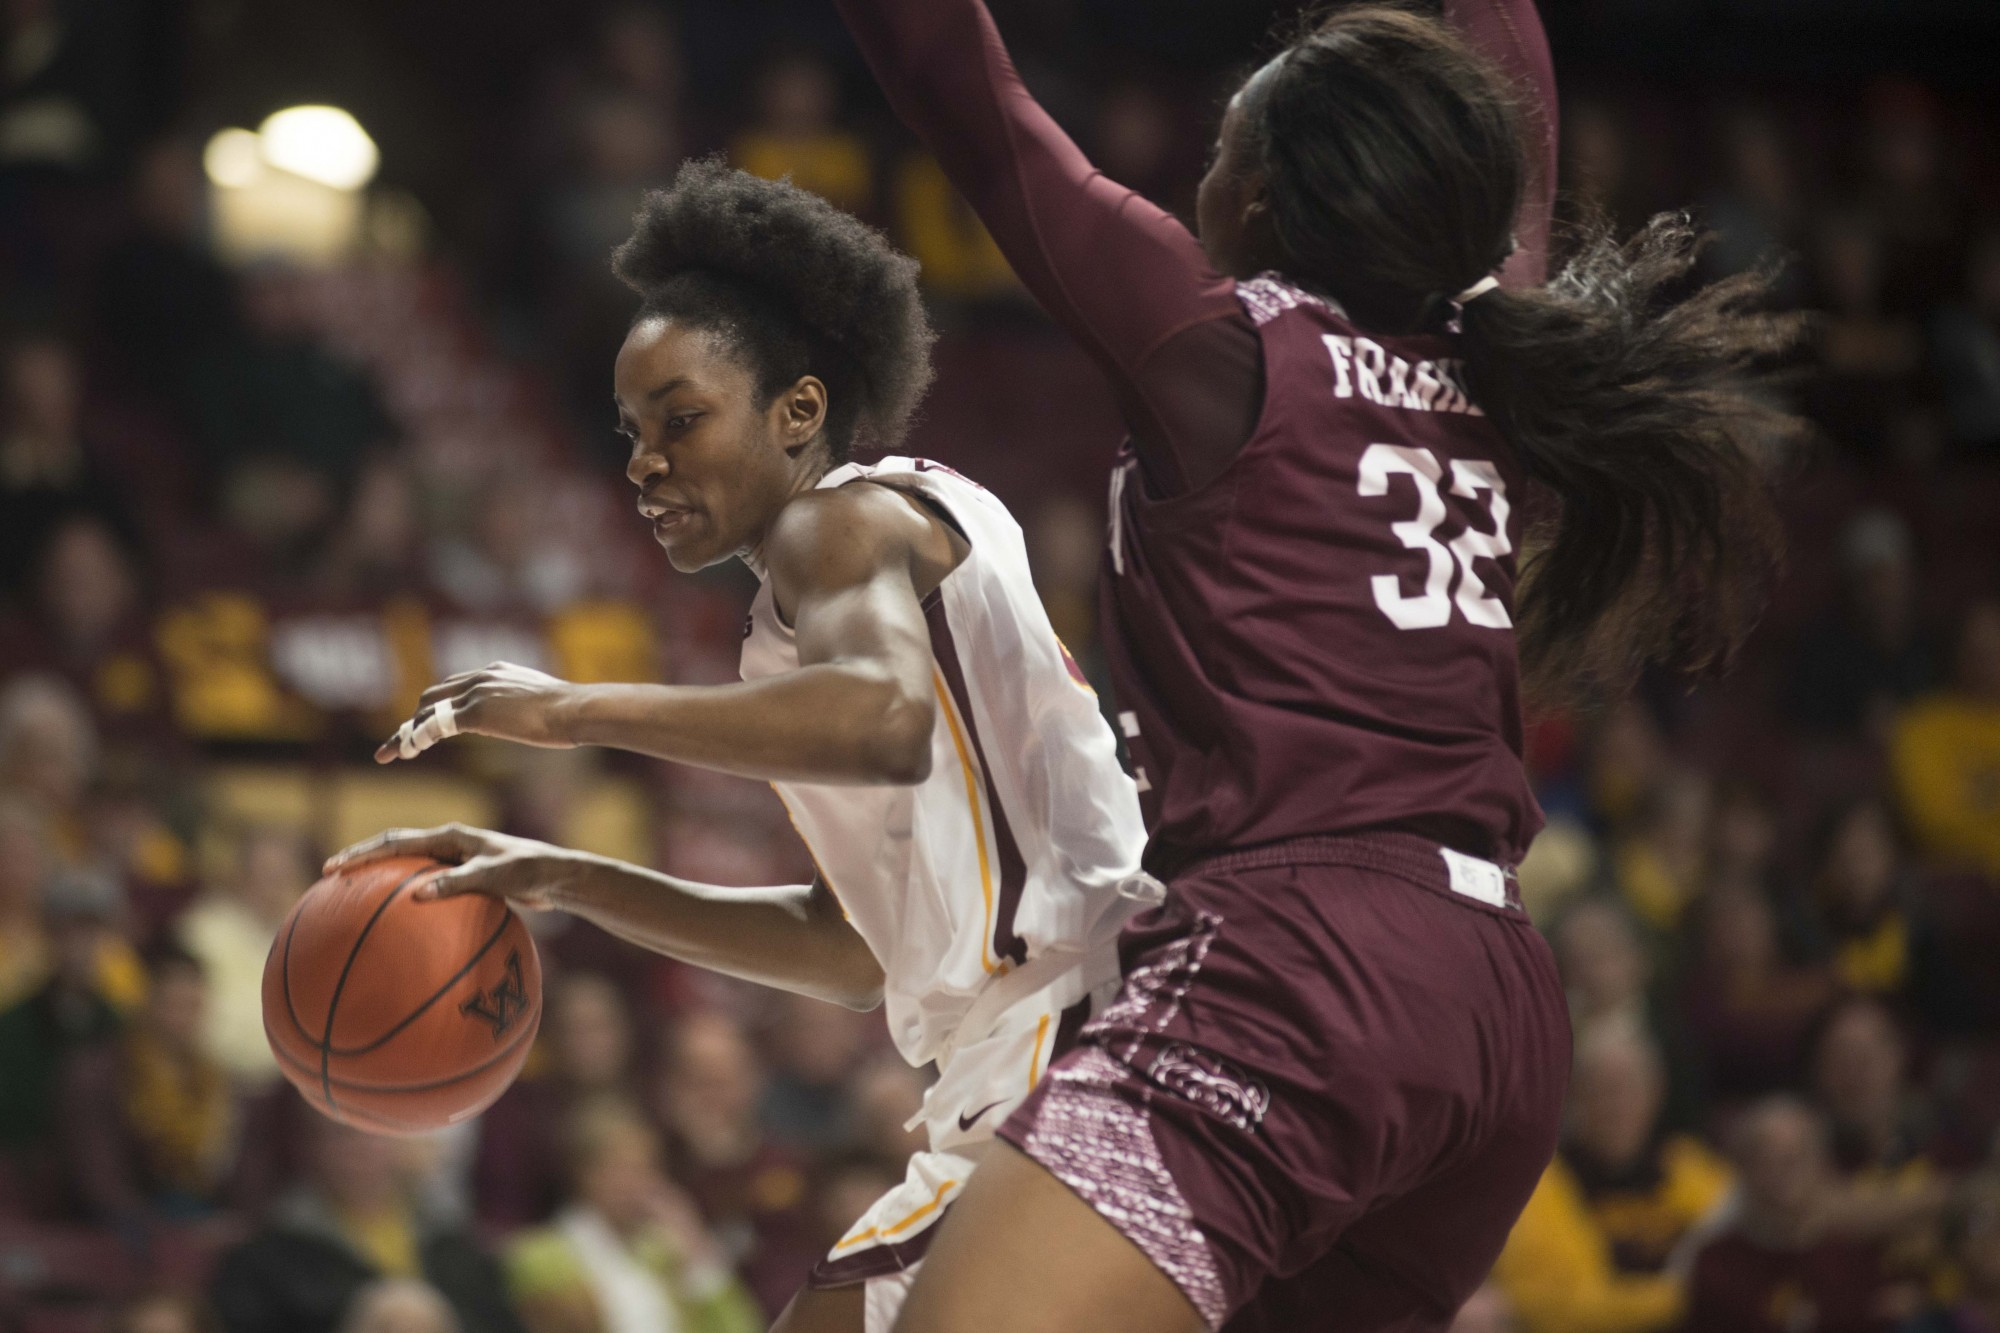 Guard Taiye Bello carries the ball through traffic at Williams Arena on Tuesday, Nov. 5. The Gophers fell to Missouri State 69-77.